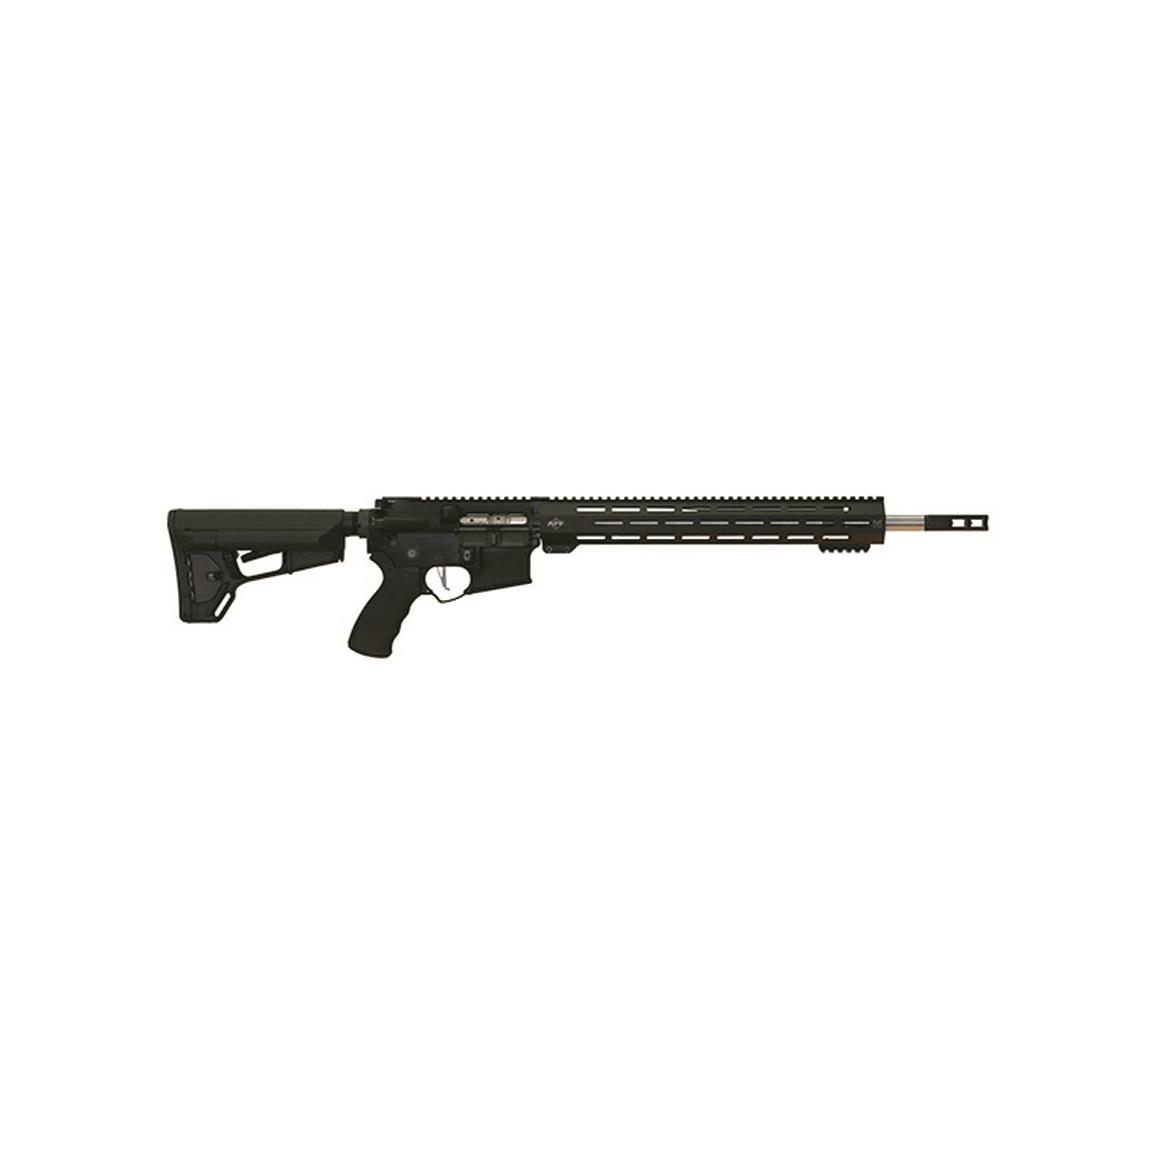 "APF 224 DMR AR-15, Semi-Automatic, .224 Valkyrie, 18"" Stainless Barrel, 25+1 Rounds"